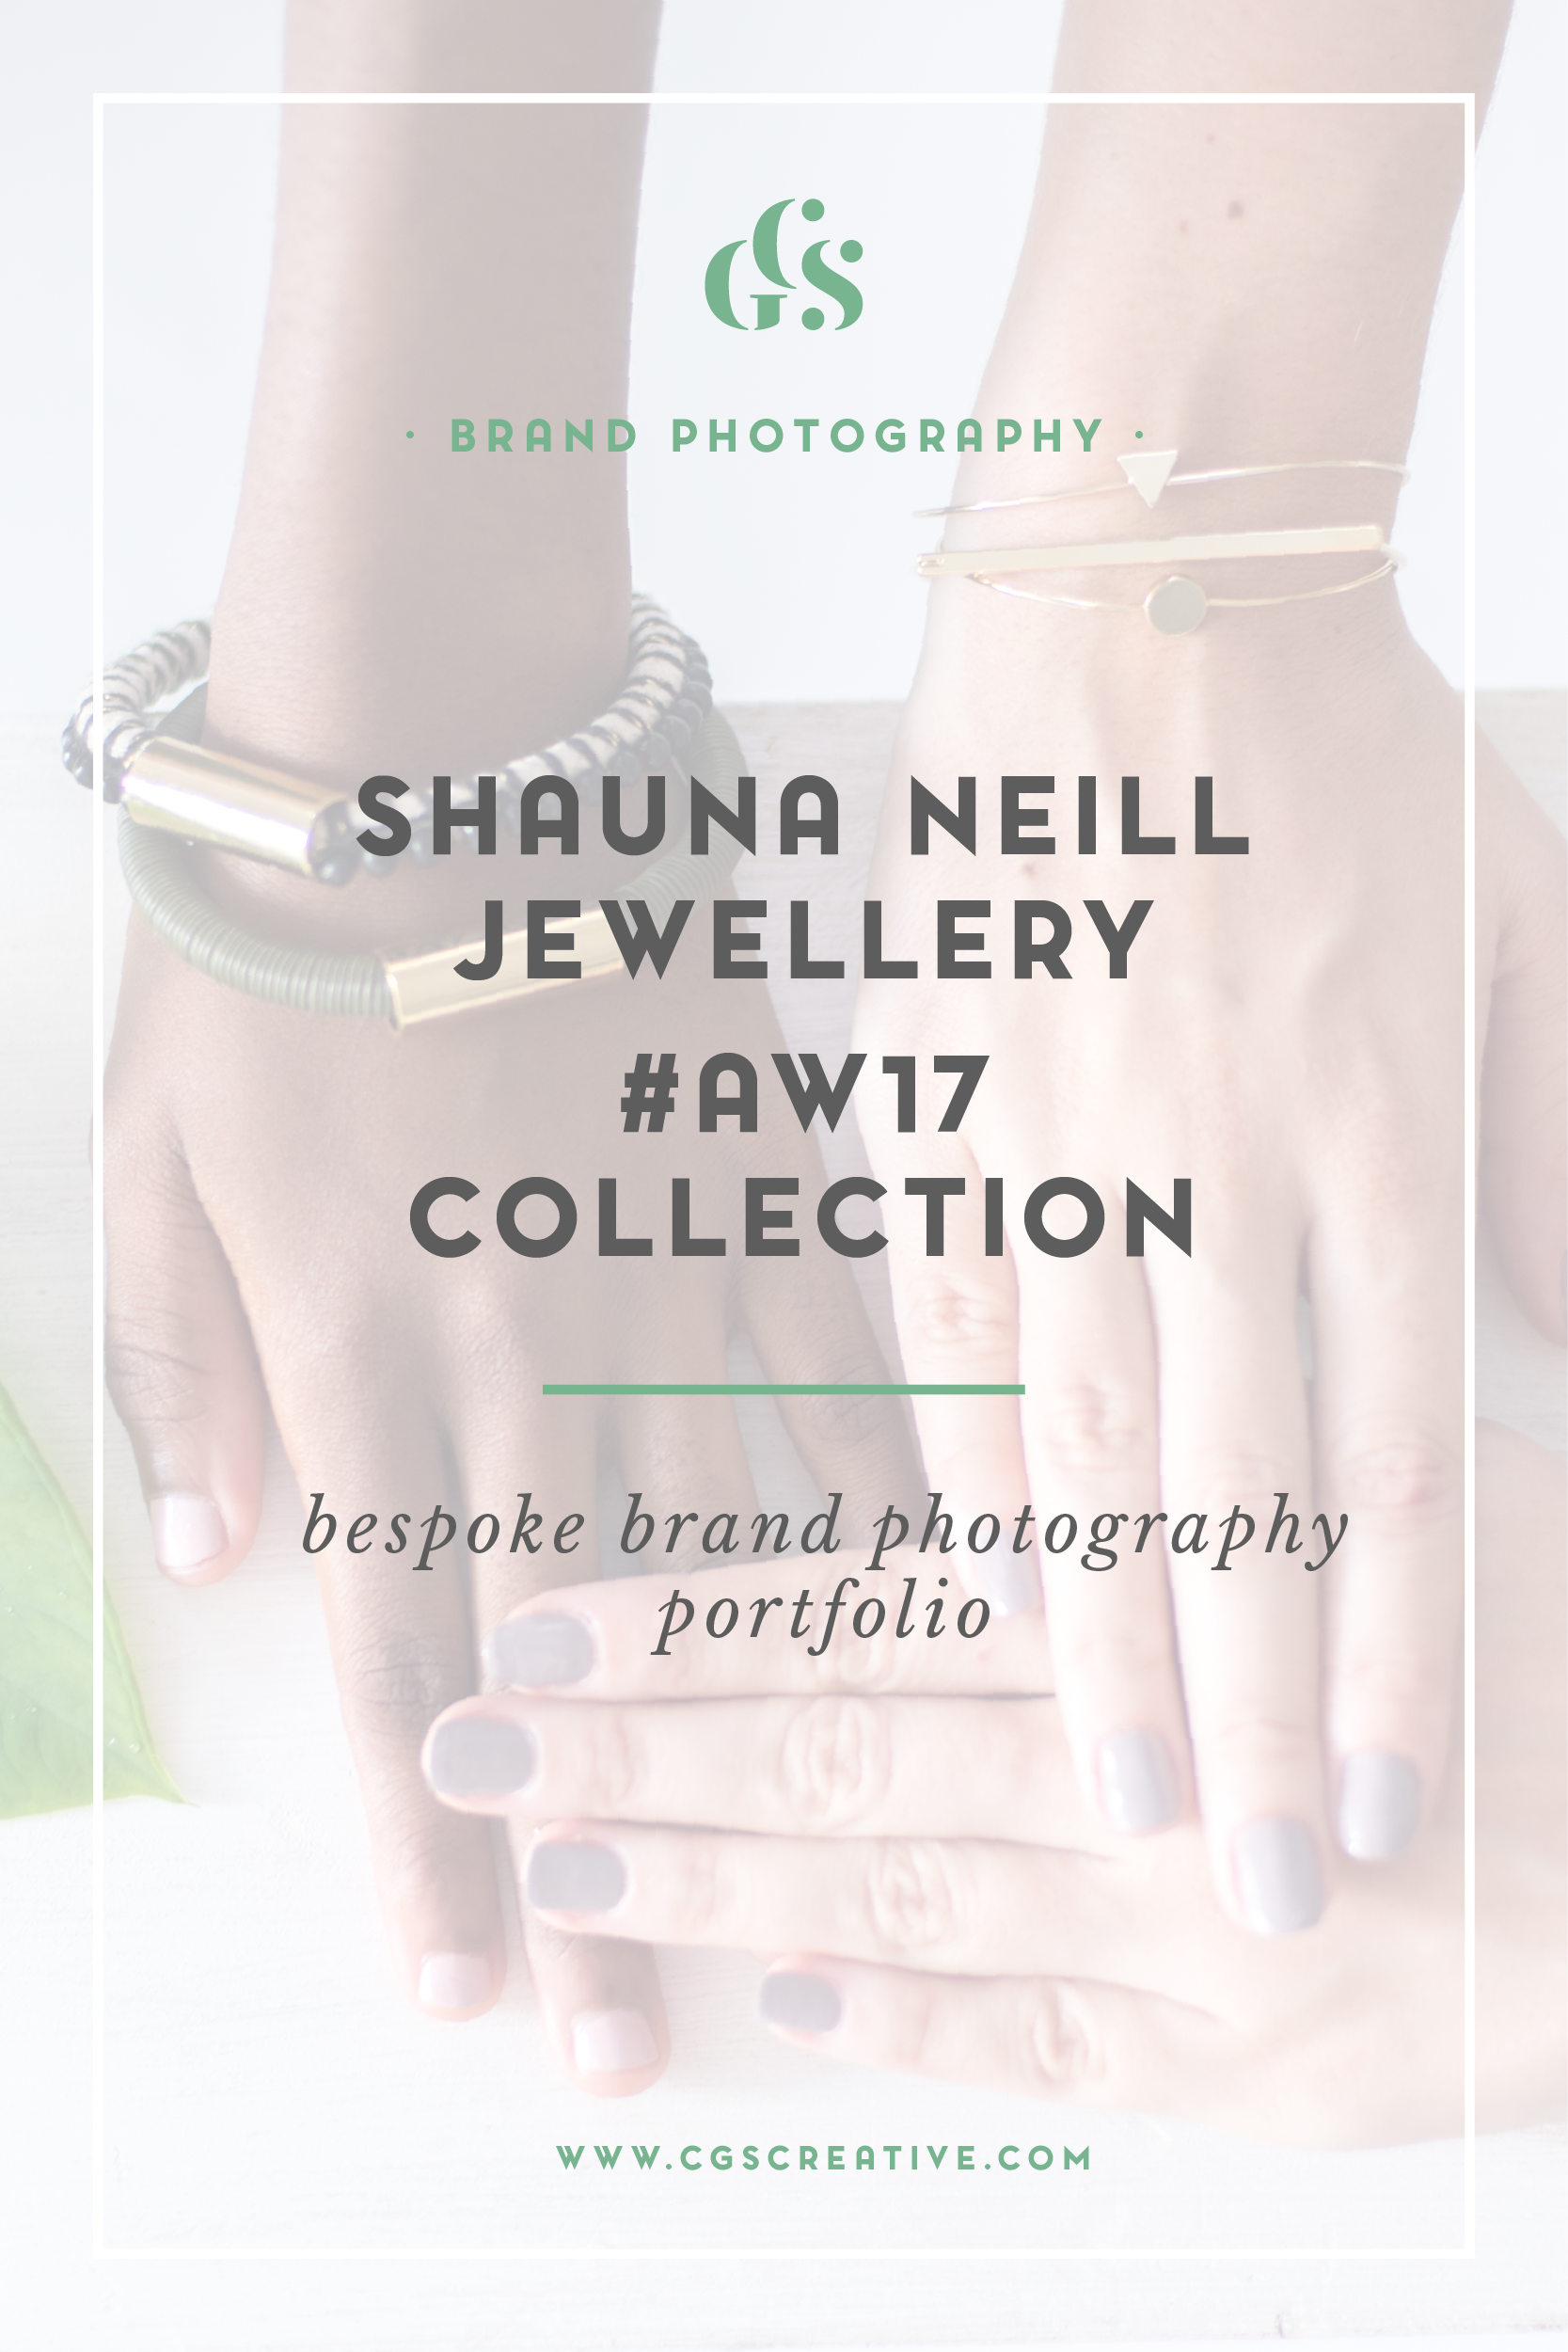 Shauna Neill Jewellery #AW17 Collection Brand Photography by Roxy Hutton of CGScreative-2.png